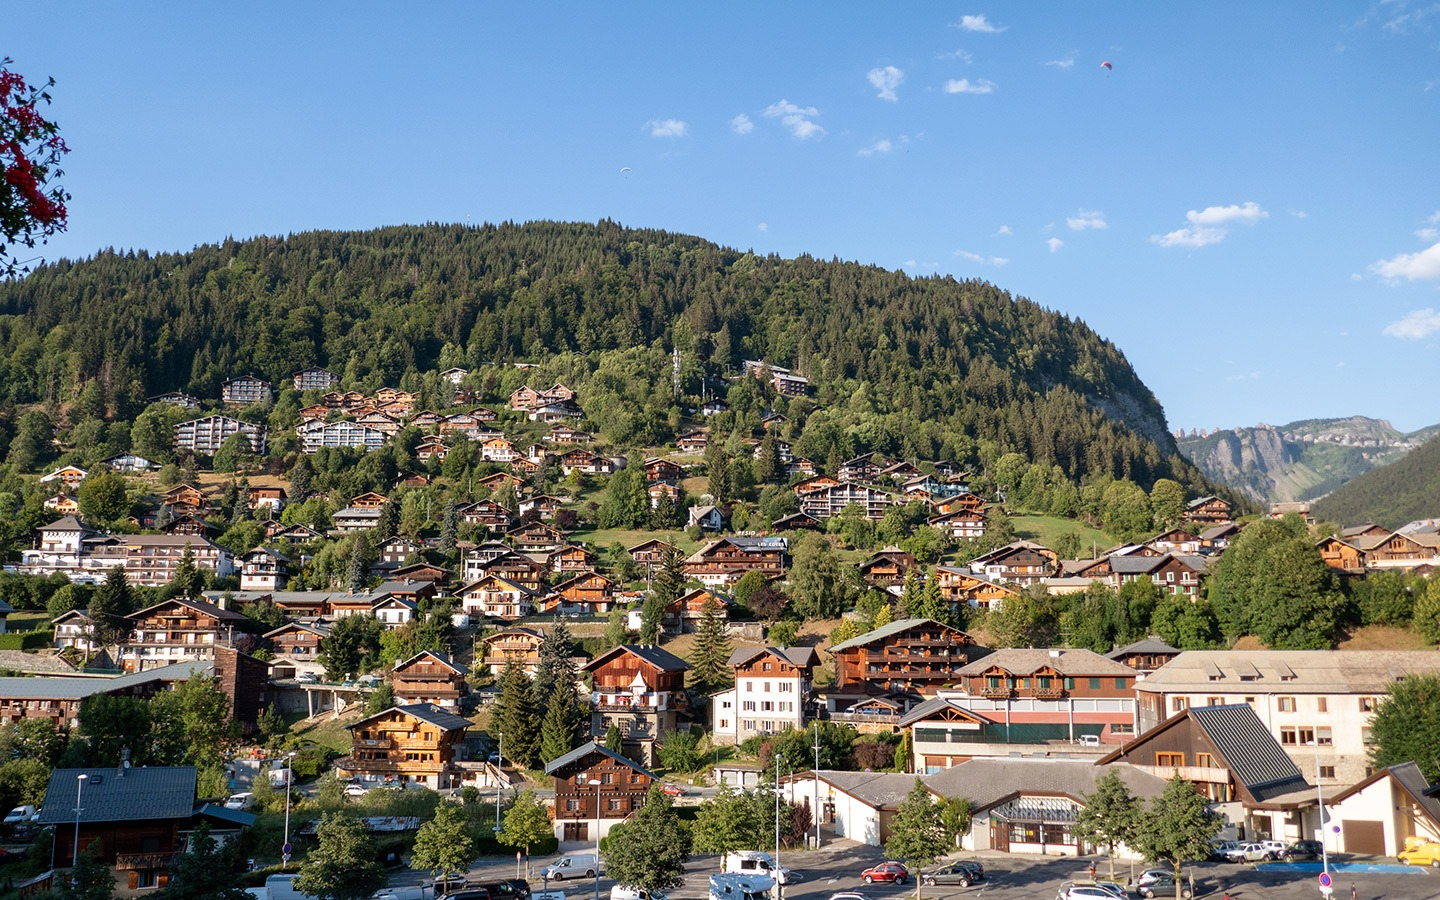 Morzine town centre, French Alps